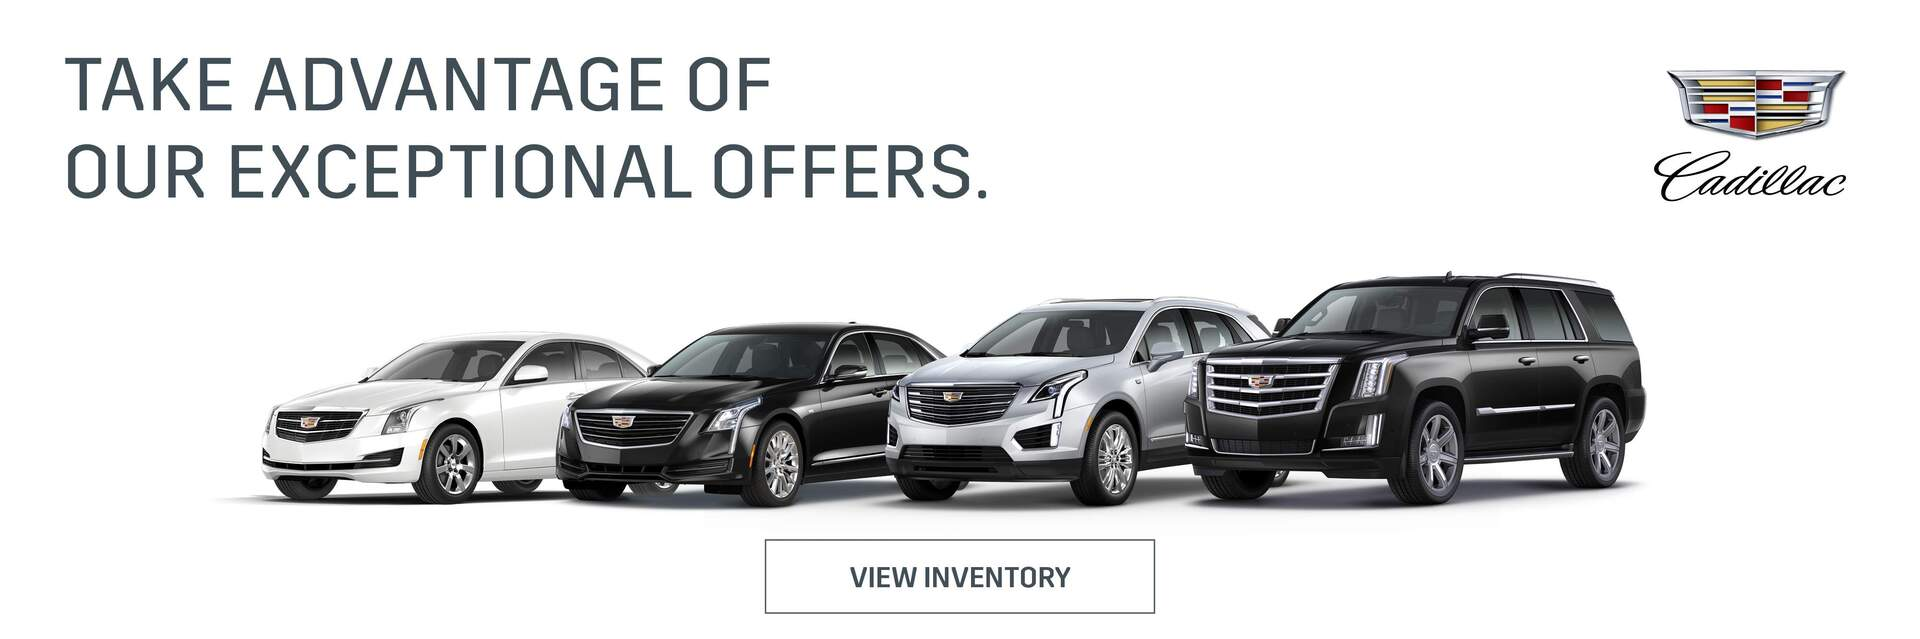 Exceptional offers on new Cadillacs at Holiday Automotive in Fond du Lac, WI